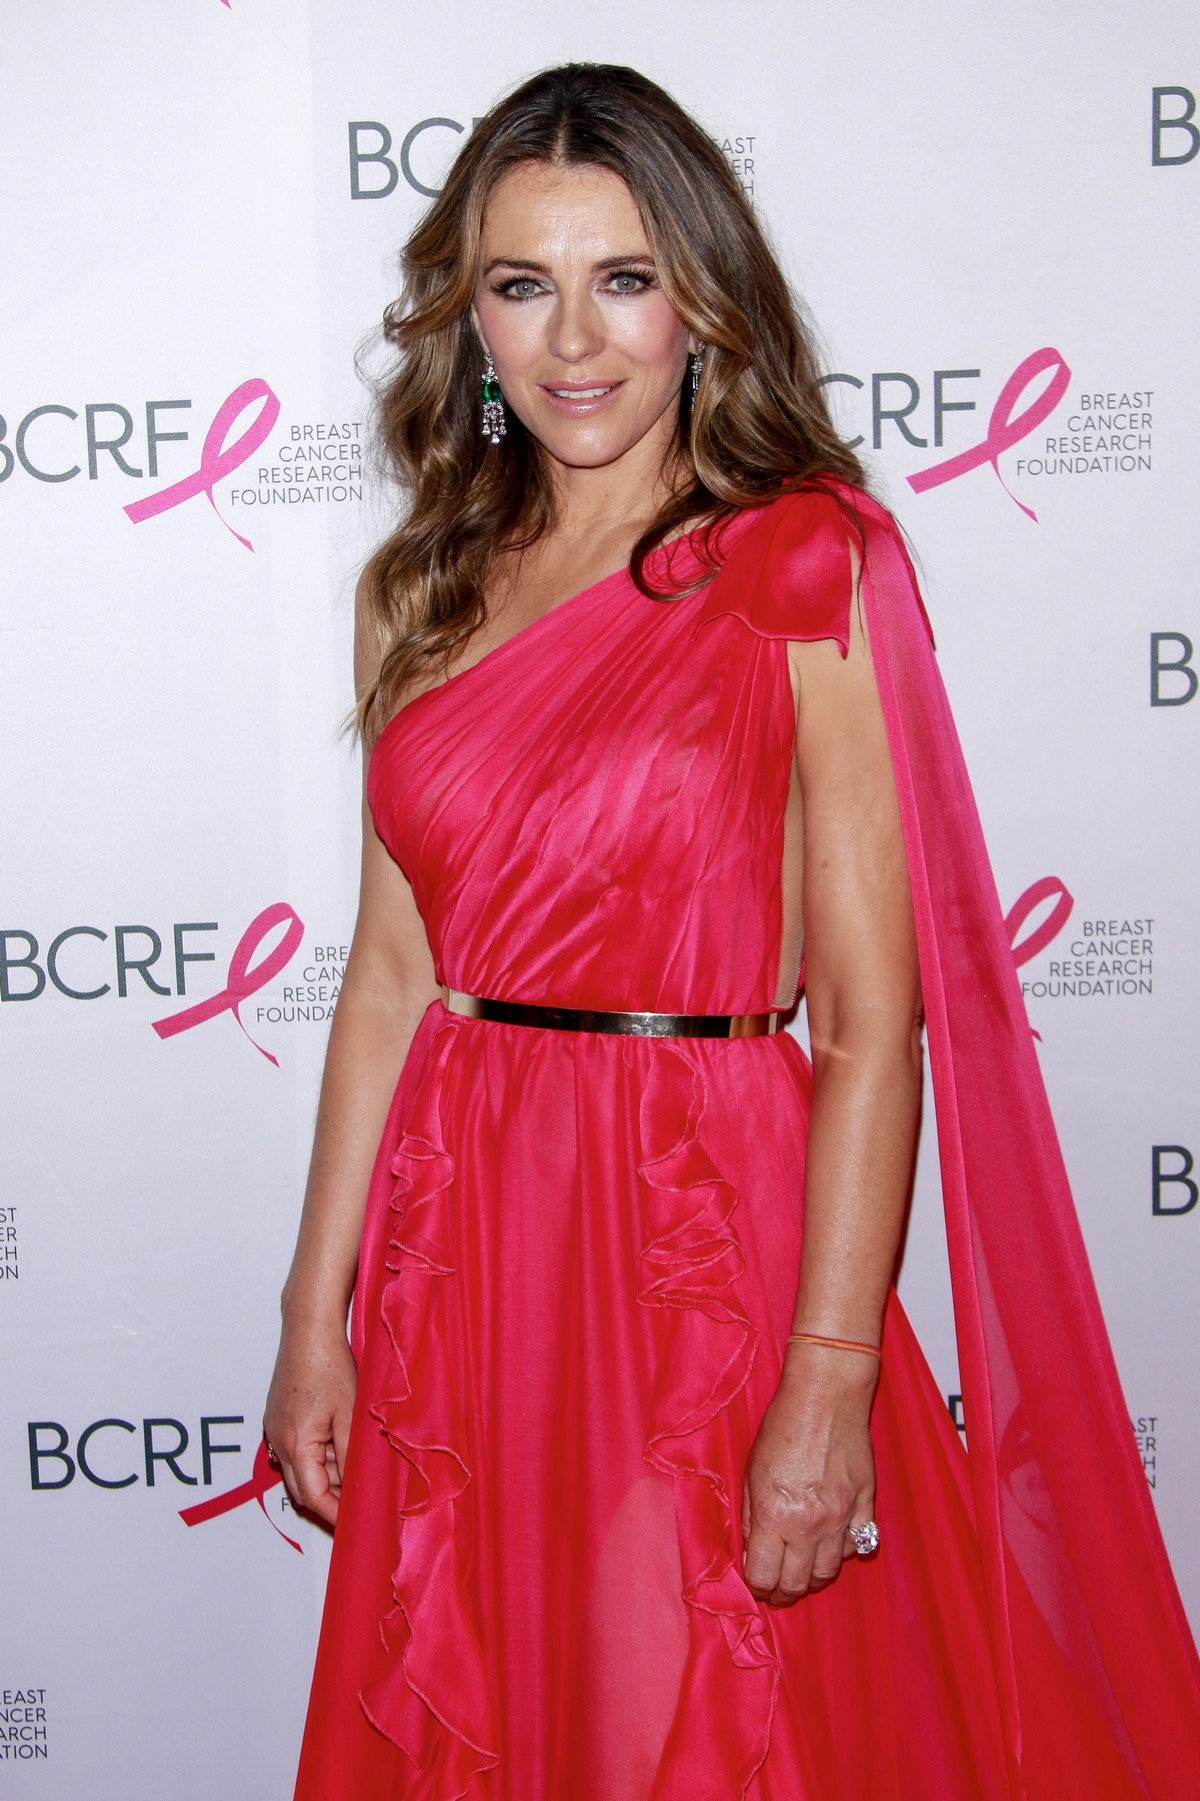 Elizabeth Hurley at Breast Cancer Research Foundation Hot Pink Party in New York 2019/05/15 2